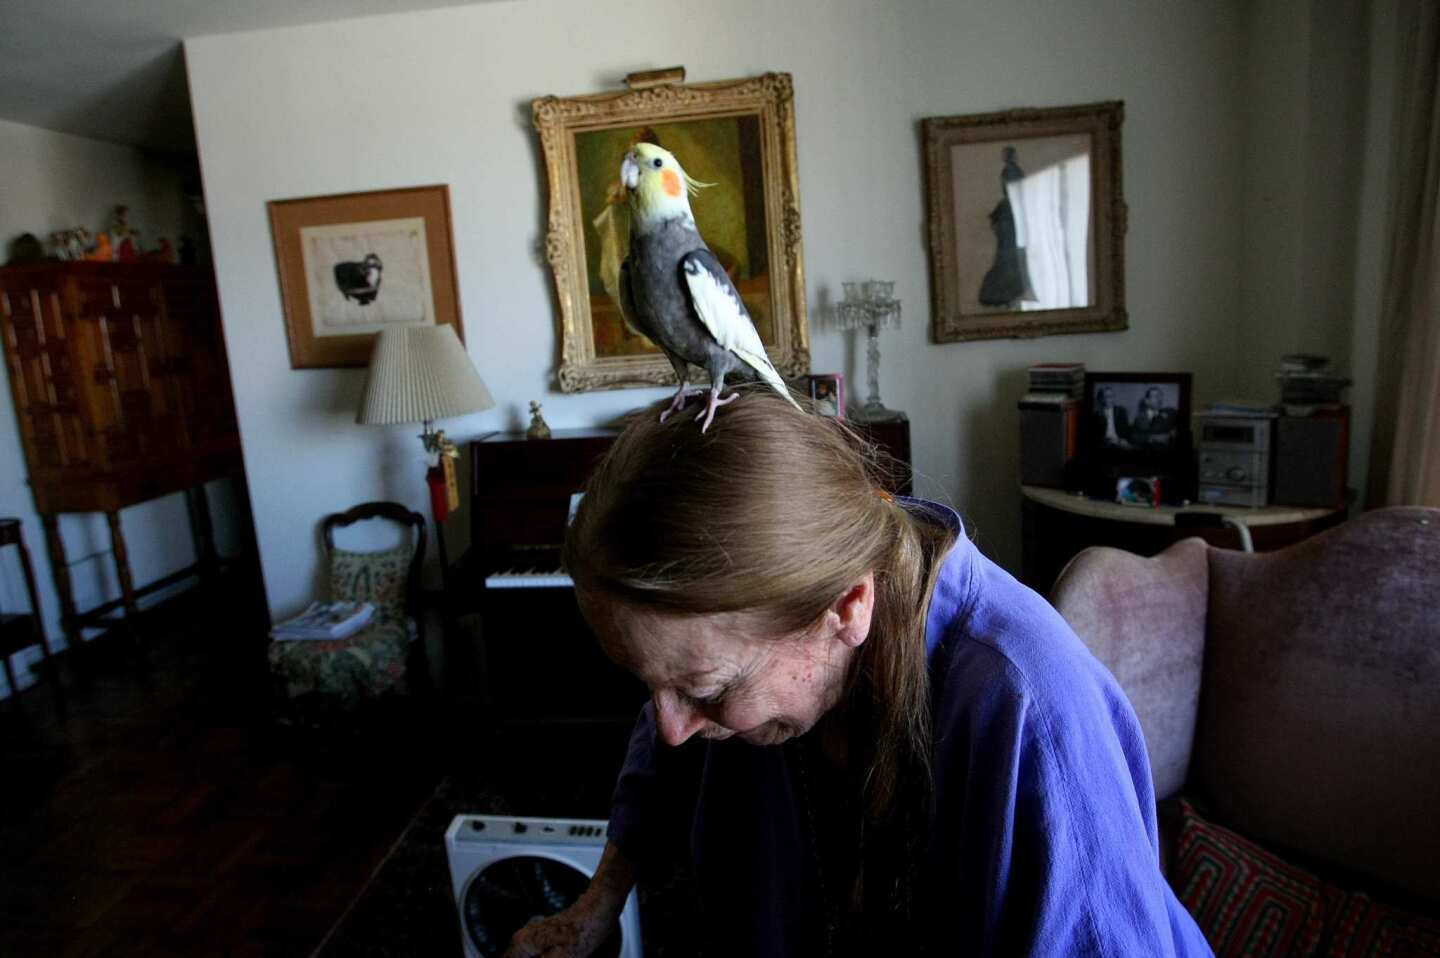 """Patricia Morison, 97, with cockatiel Cookie, has lived at Park La Brea for more than 50 years. Back when, """"It was more homogenous.... Most of the population was actors, actresses, artistic folks and businesspeople,"""" she says. """"There were never any children."""" About its evolution over the decades, she's philosophical: """"Life goes, life changes."""""""